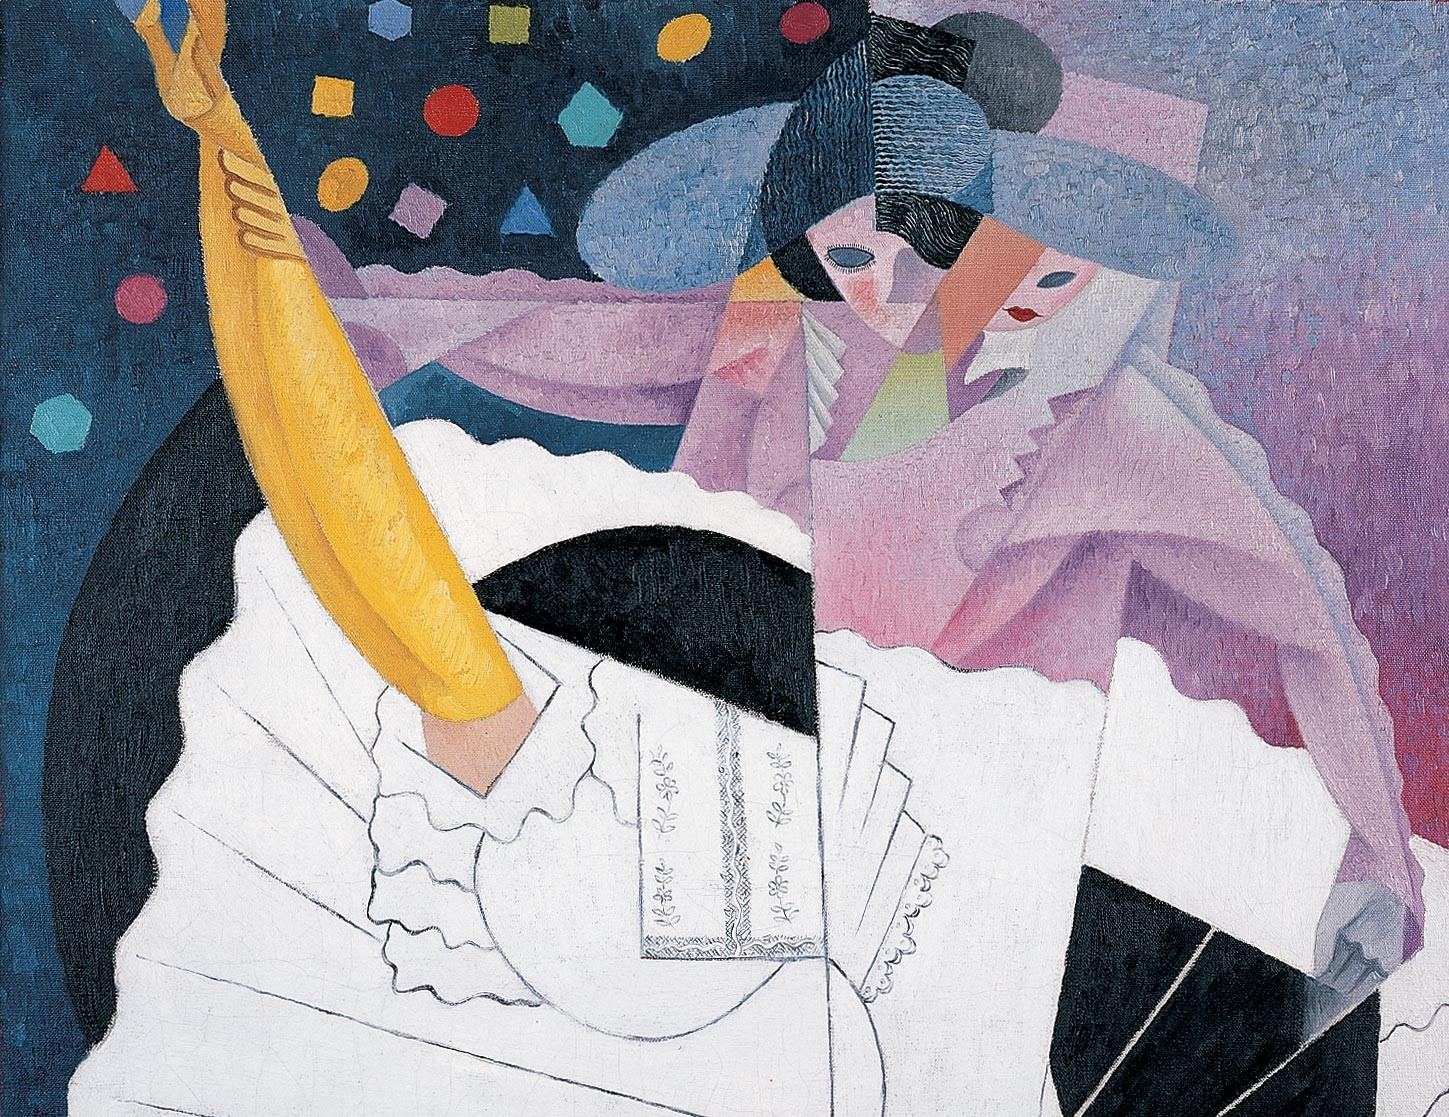 Painting by Gino Severini in cubist style with geometric shapes and patterns. Depicts a full length view of a dancer performing the Can-Can, wearing yellow hose and white petticoats.